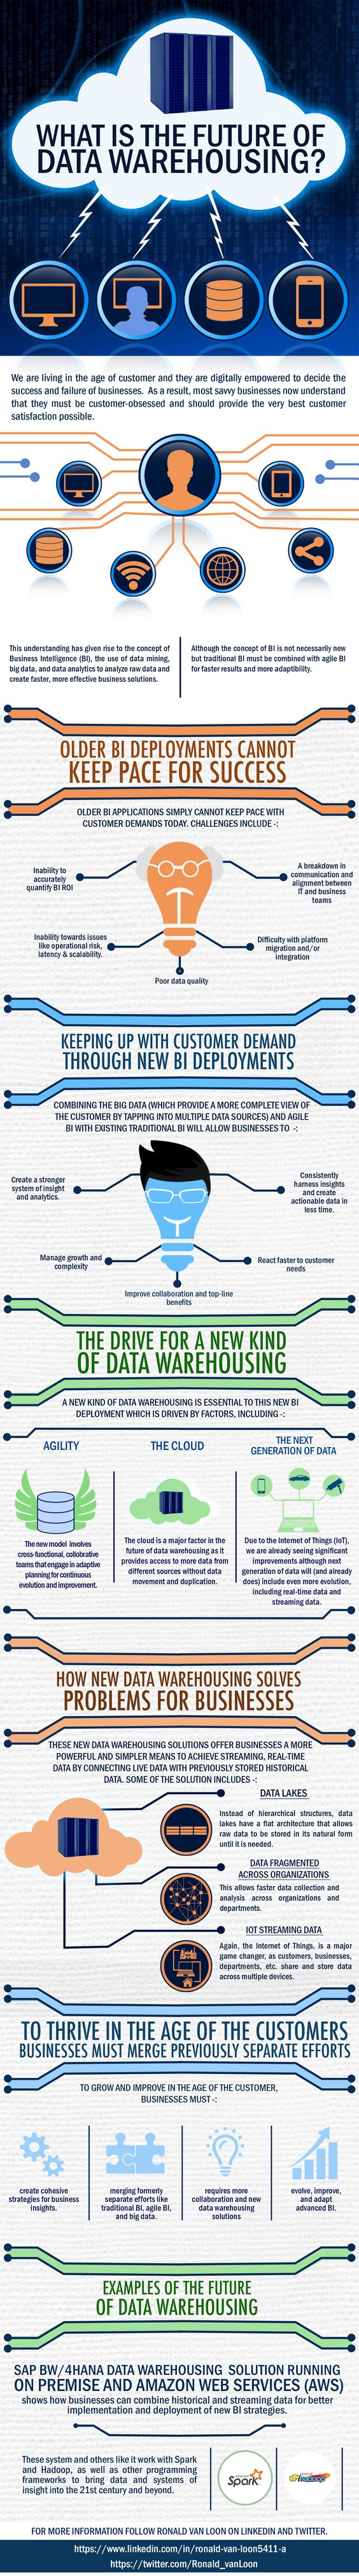 What Is the Future of #Data #Warehousing? Find out more here: https://www.linkedin.com/pulse/what-future-data-warehousing-ronald-van-loon?articleId=6199187976539467776